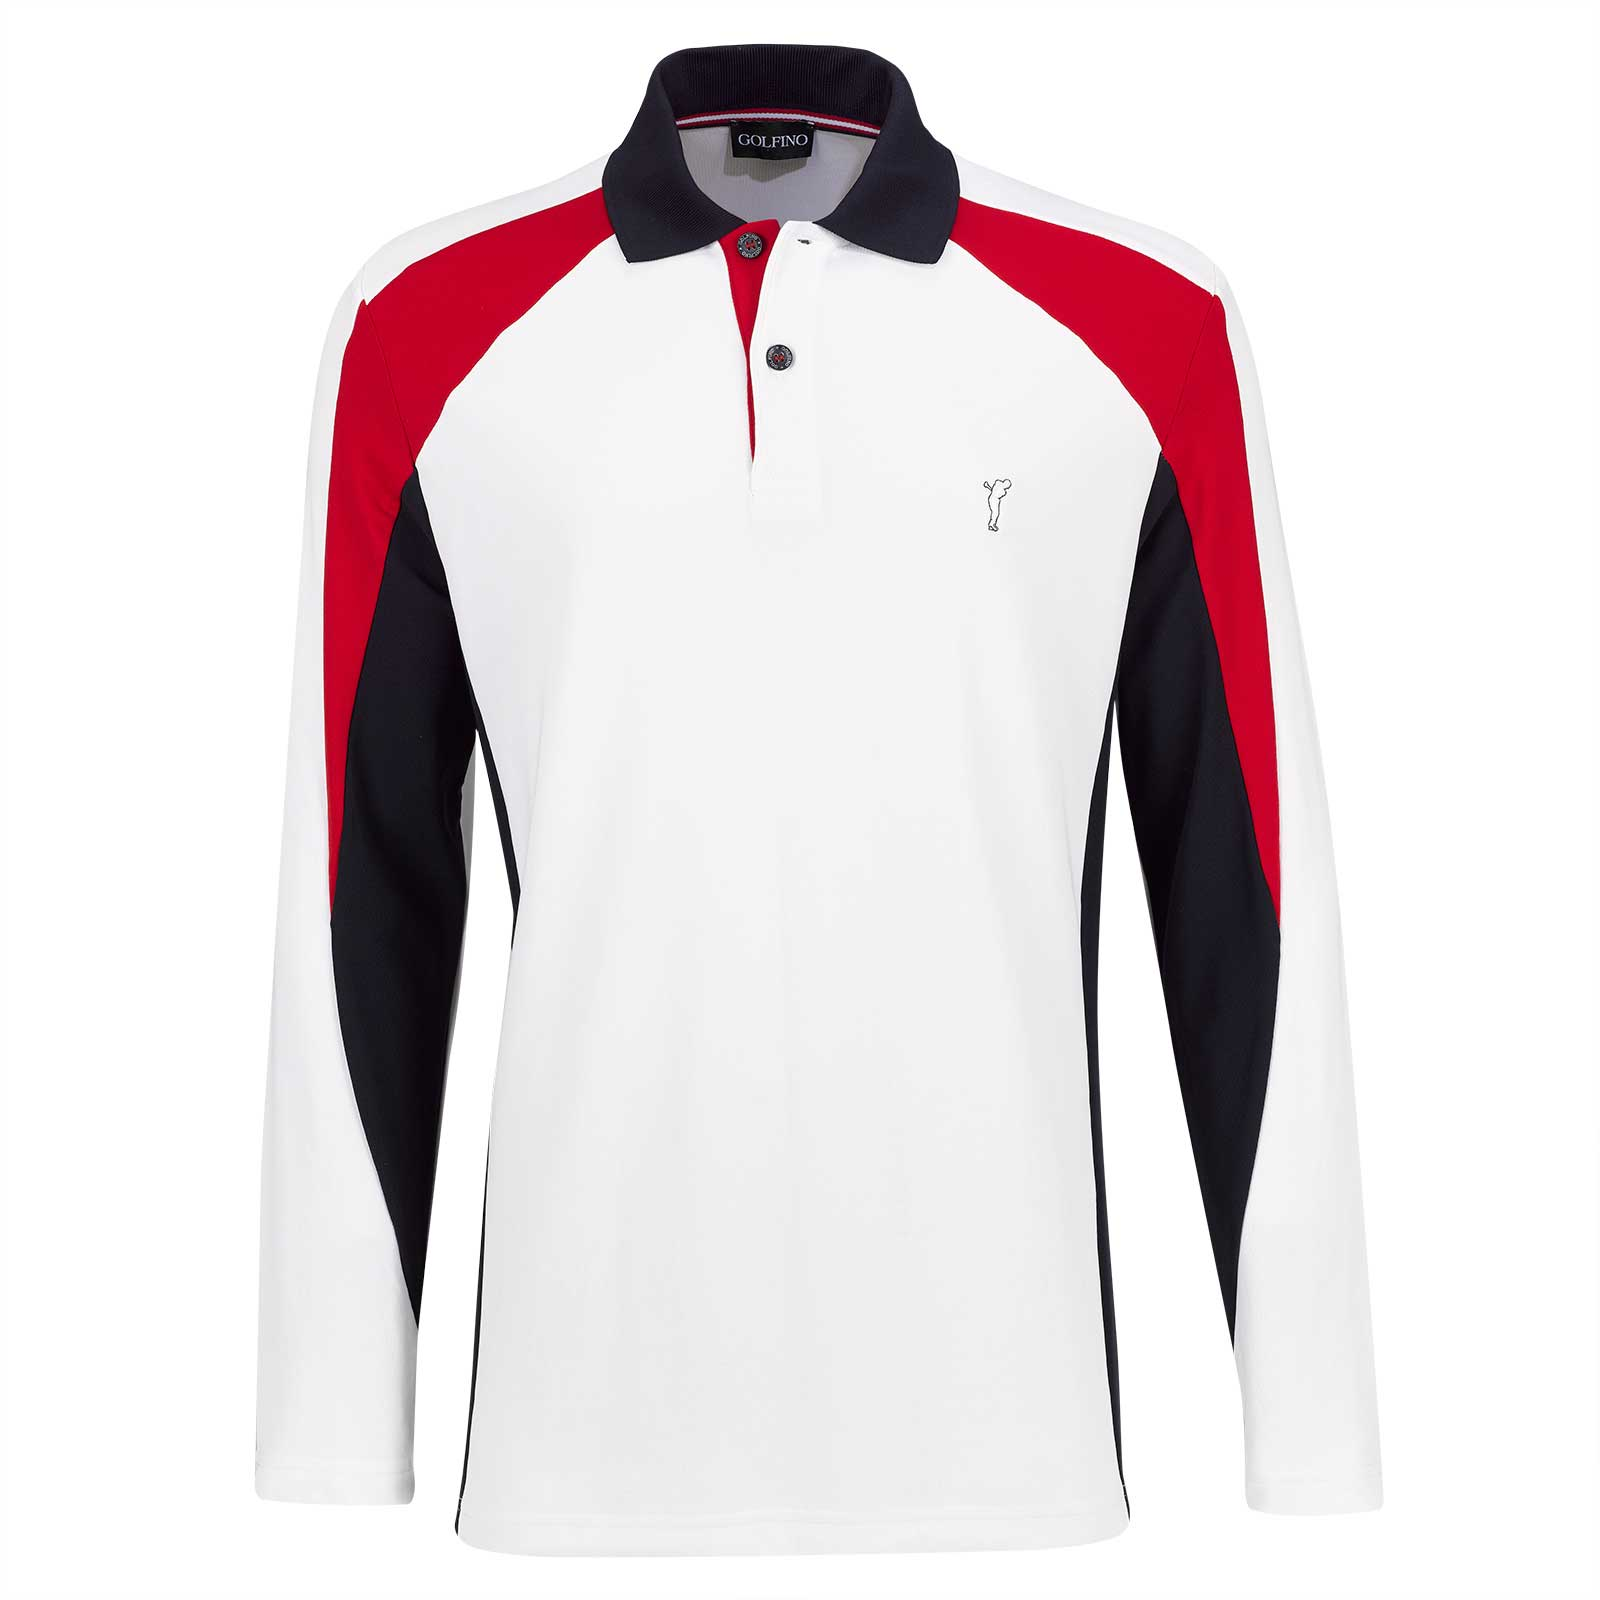 Polo de golf Performance de manga larga de hombre con Moisture Management.